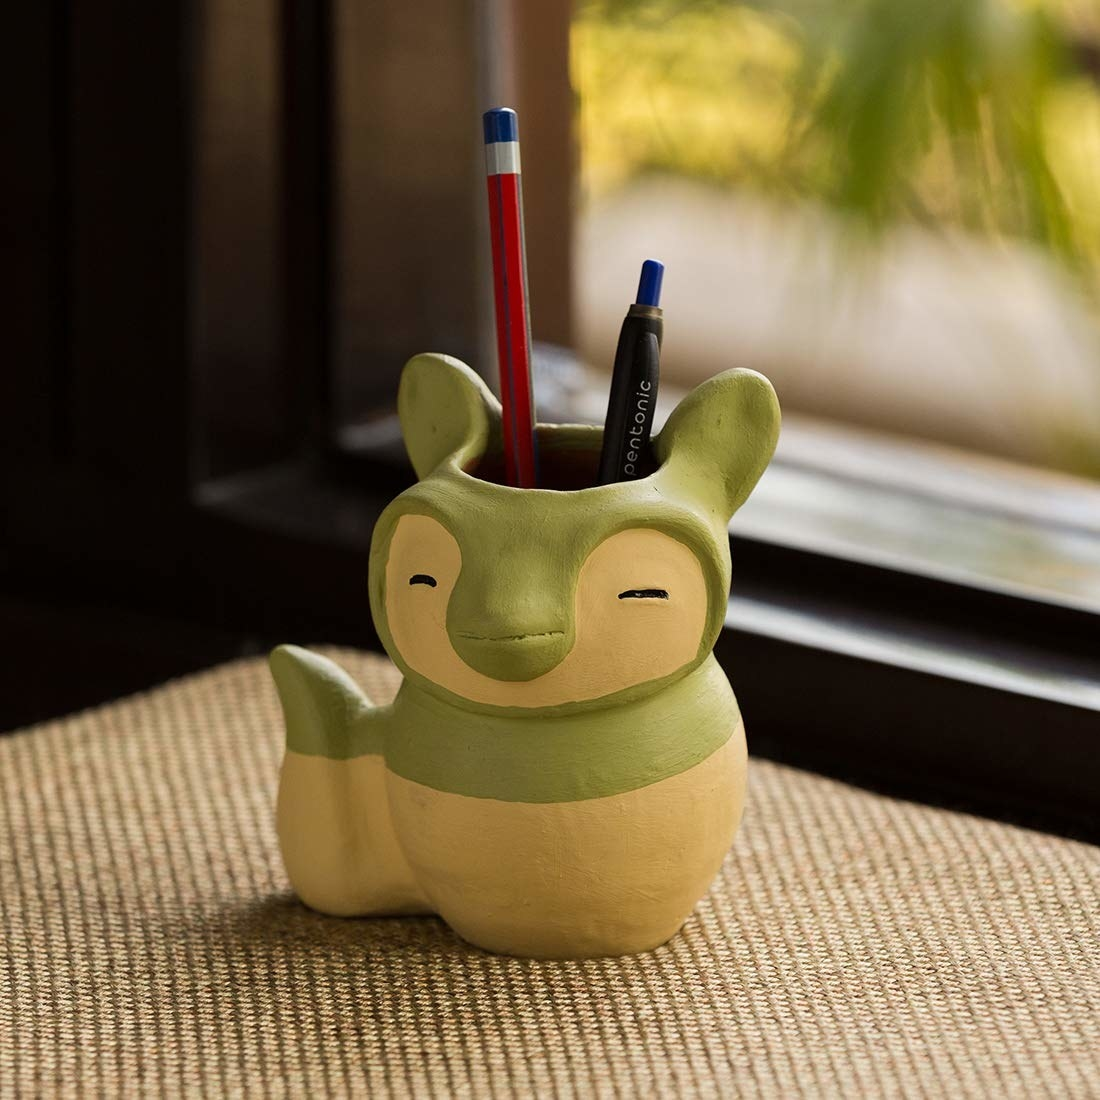 A cat-shaped pen stand in white and green